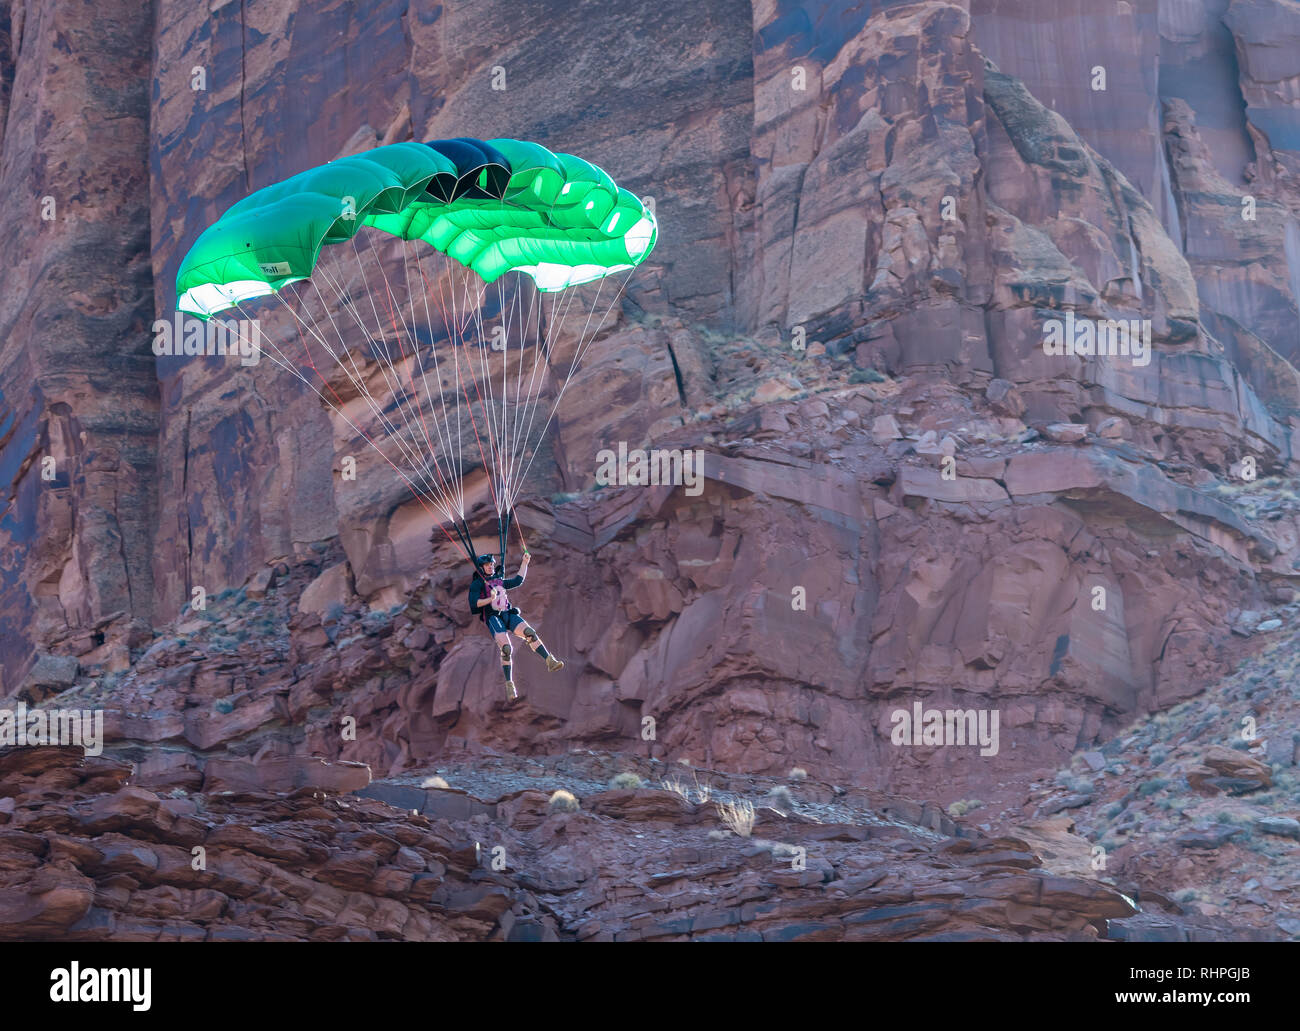 Rowan Lovell BASE jumping near Moab Utah - Stock Image